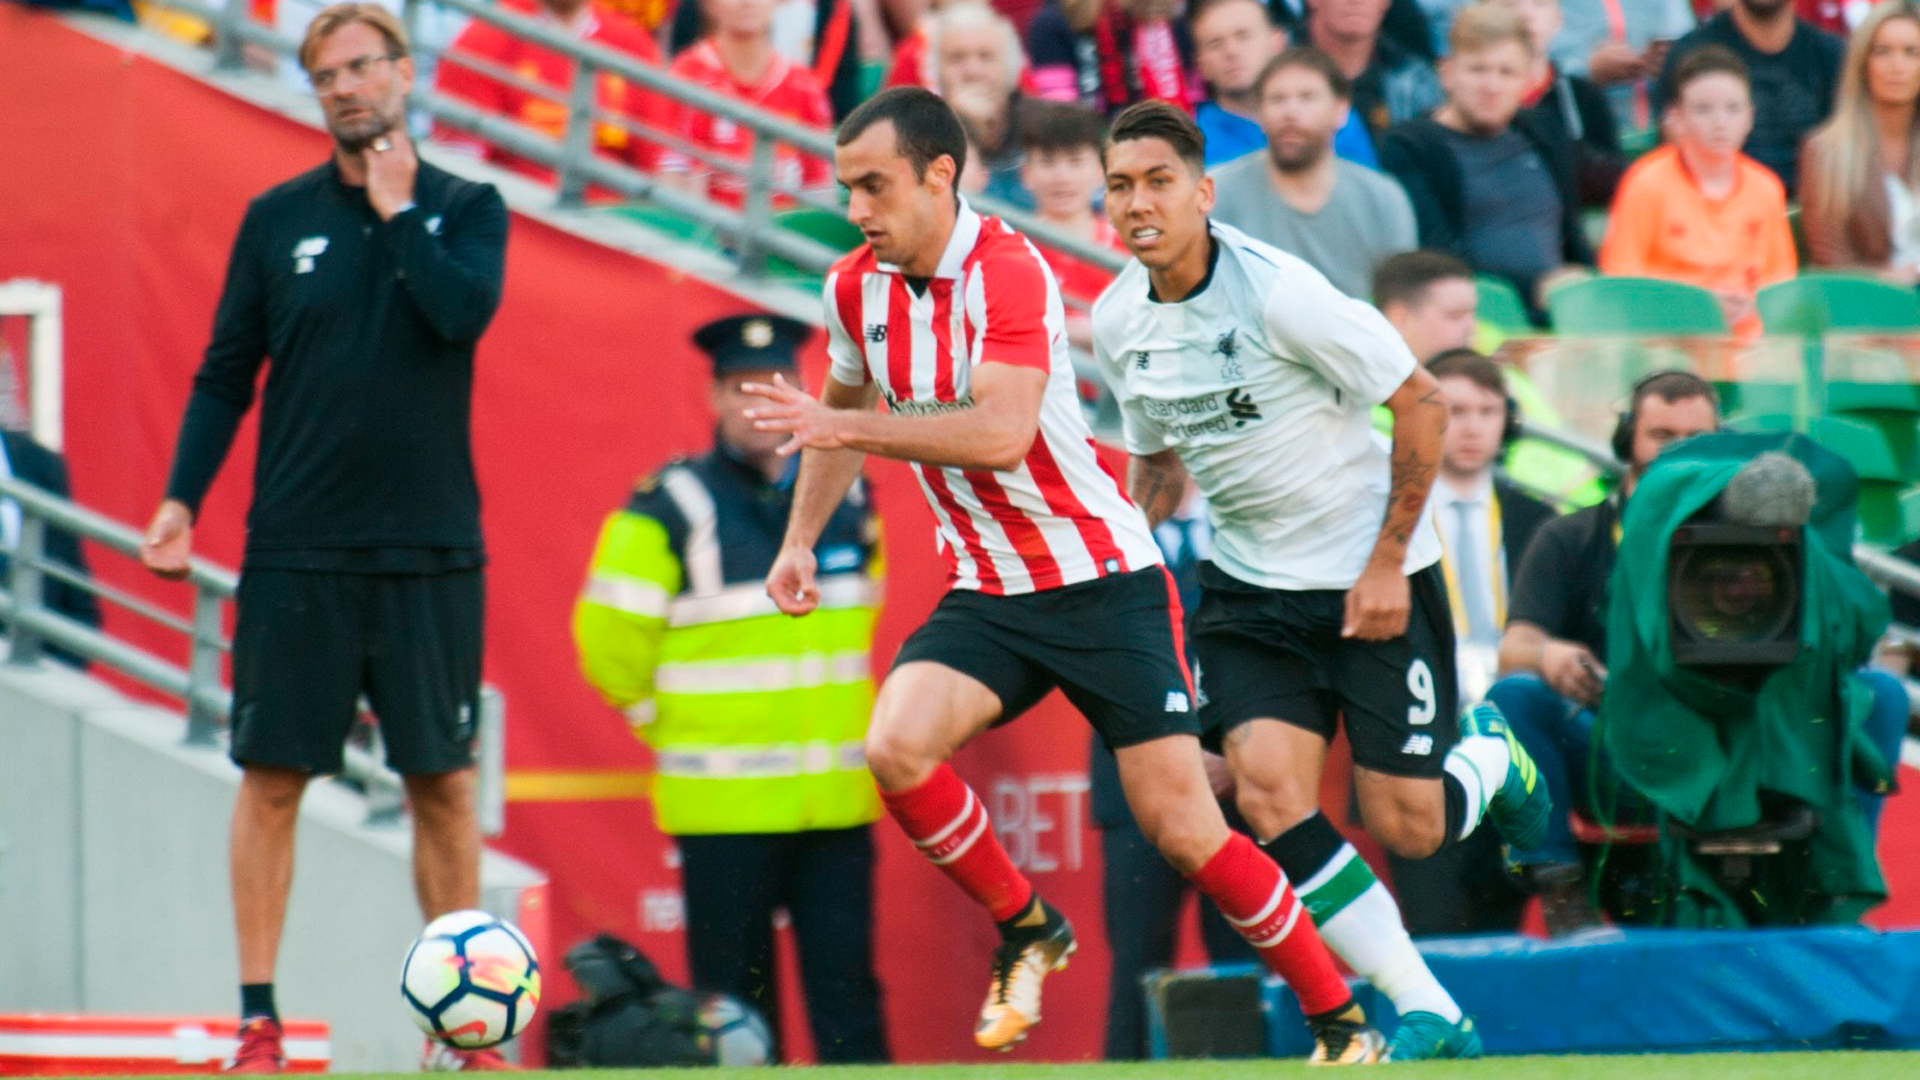 Athletic Club to face Liverpool FC at Anfield in pre-season